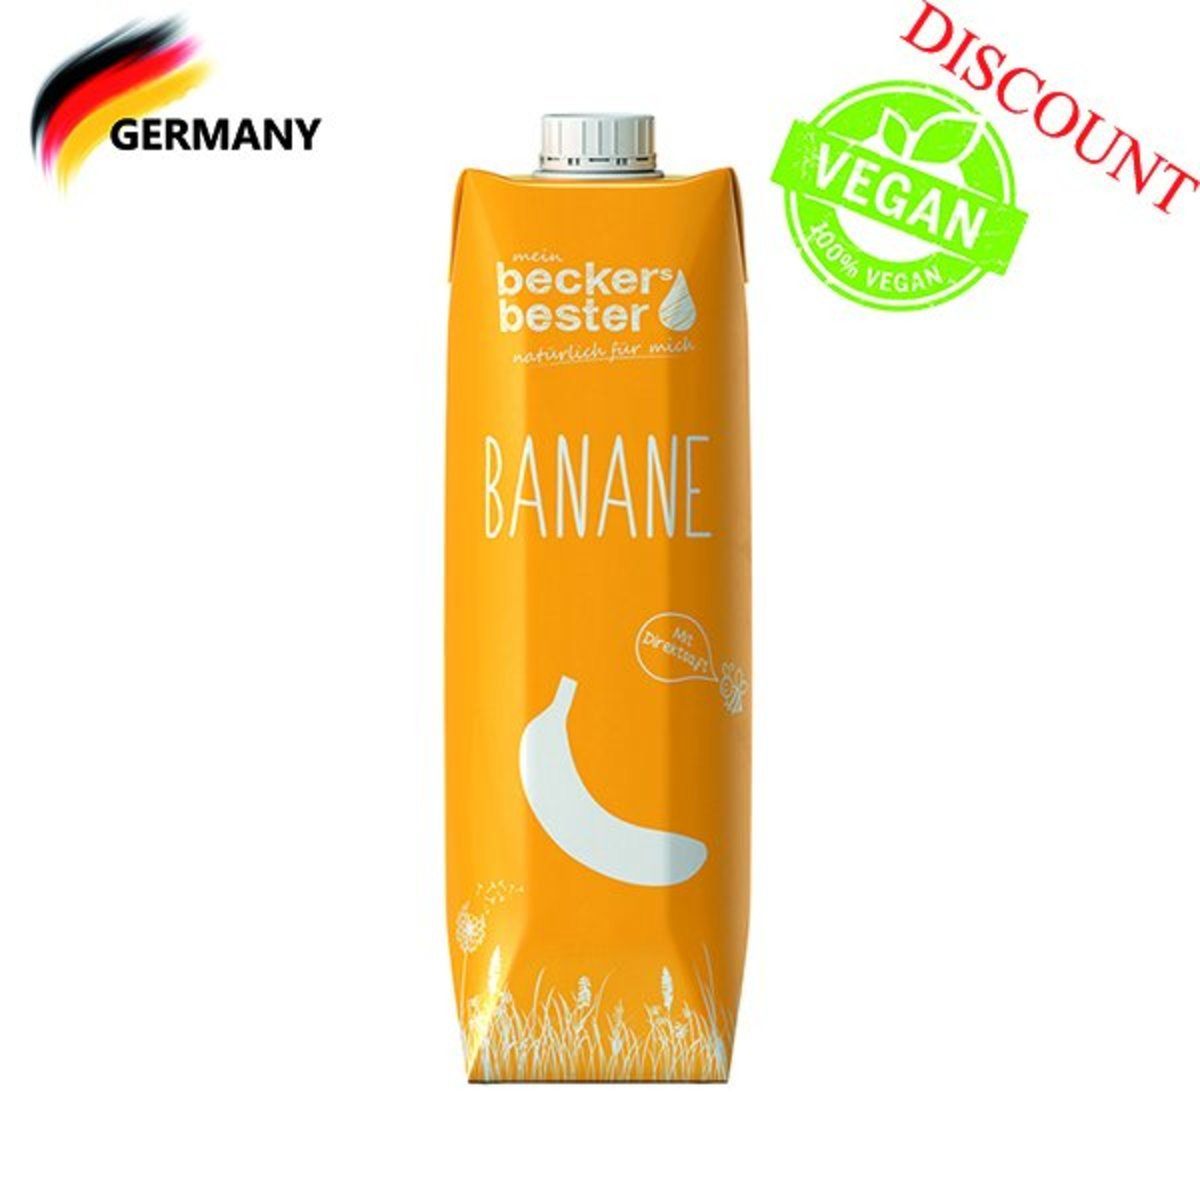 Direct Pressed Banana Nectar (Non-concentrated) 1L (best before date: 16/11/2019)